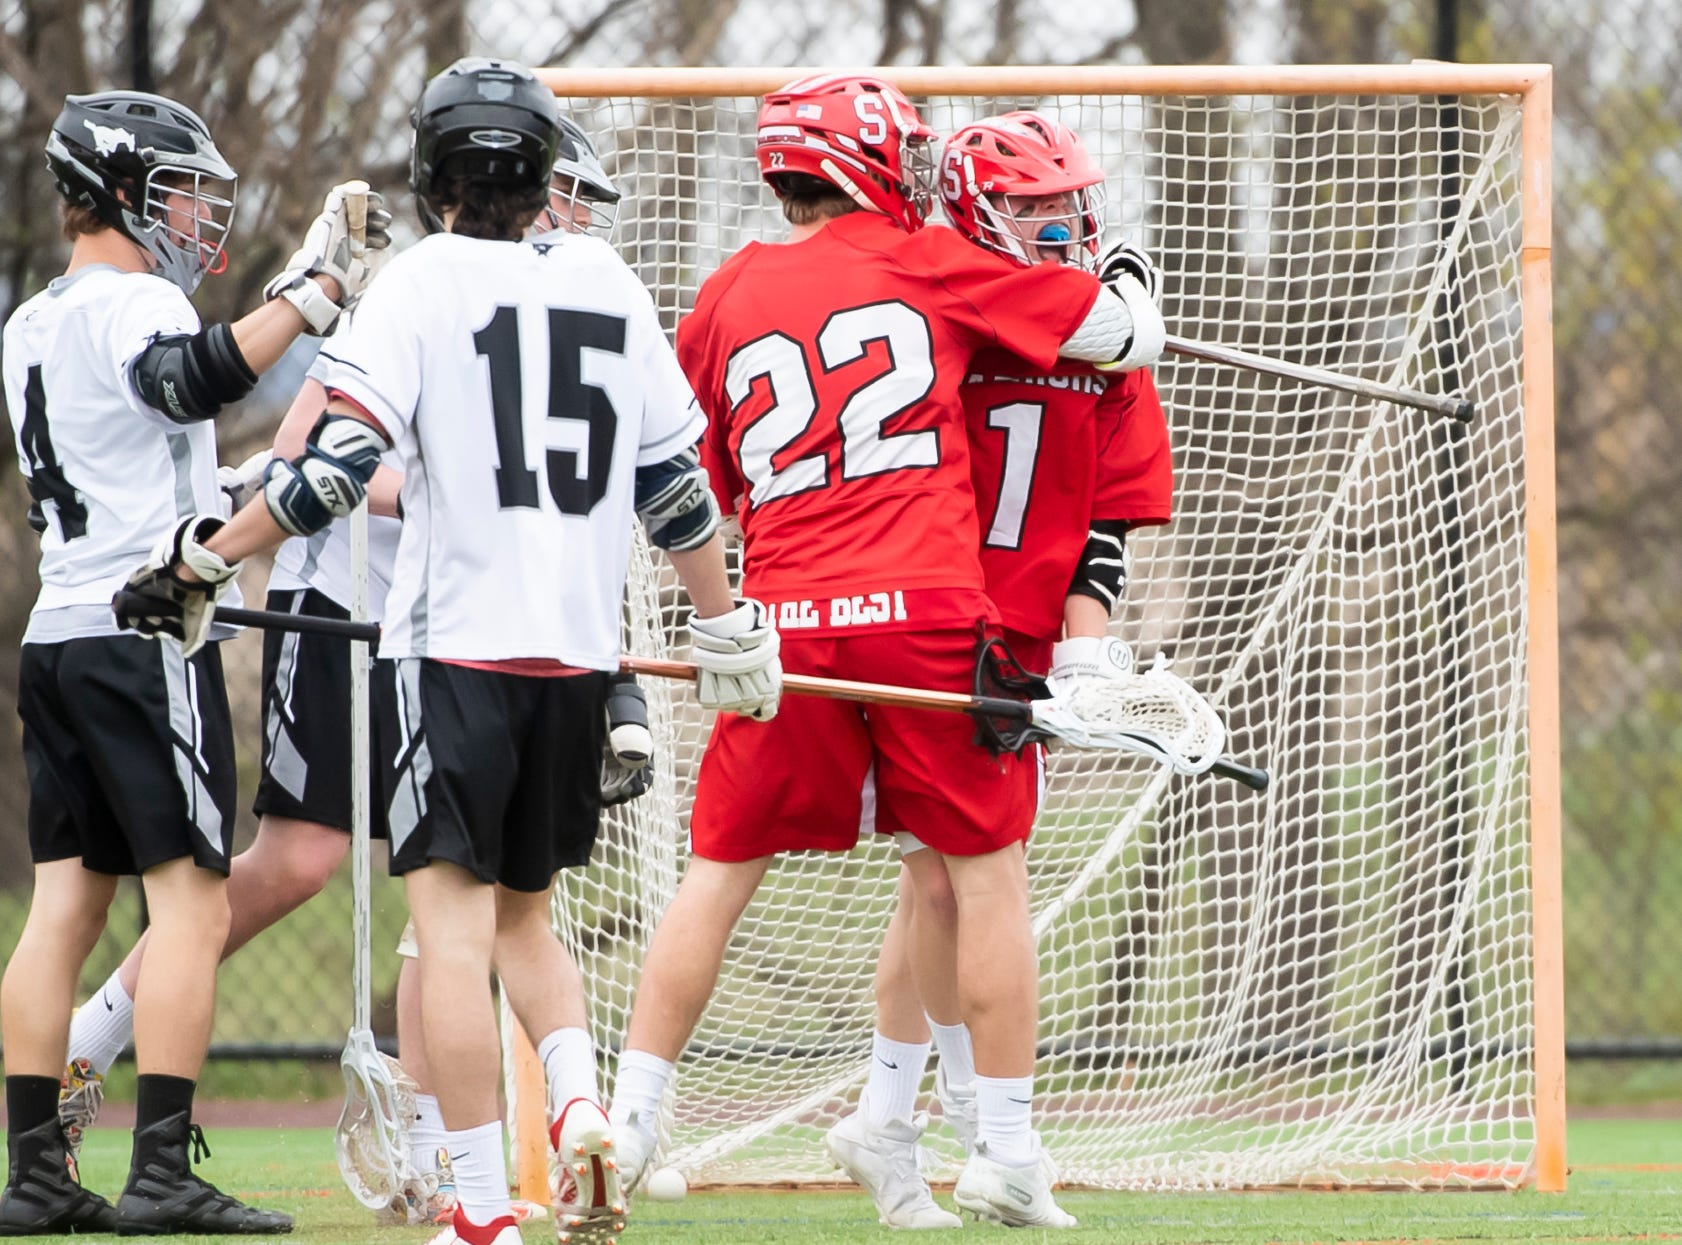 Susquehannock's Ben Tomasic (1) celebrates with Allen Clapp (22) after scoring a goal during a YAIAA lacrosse game against South Western in Hanover on Monday, April 8, 2019. Susquehannock won 14-3.